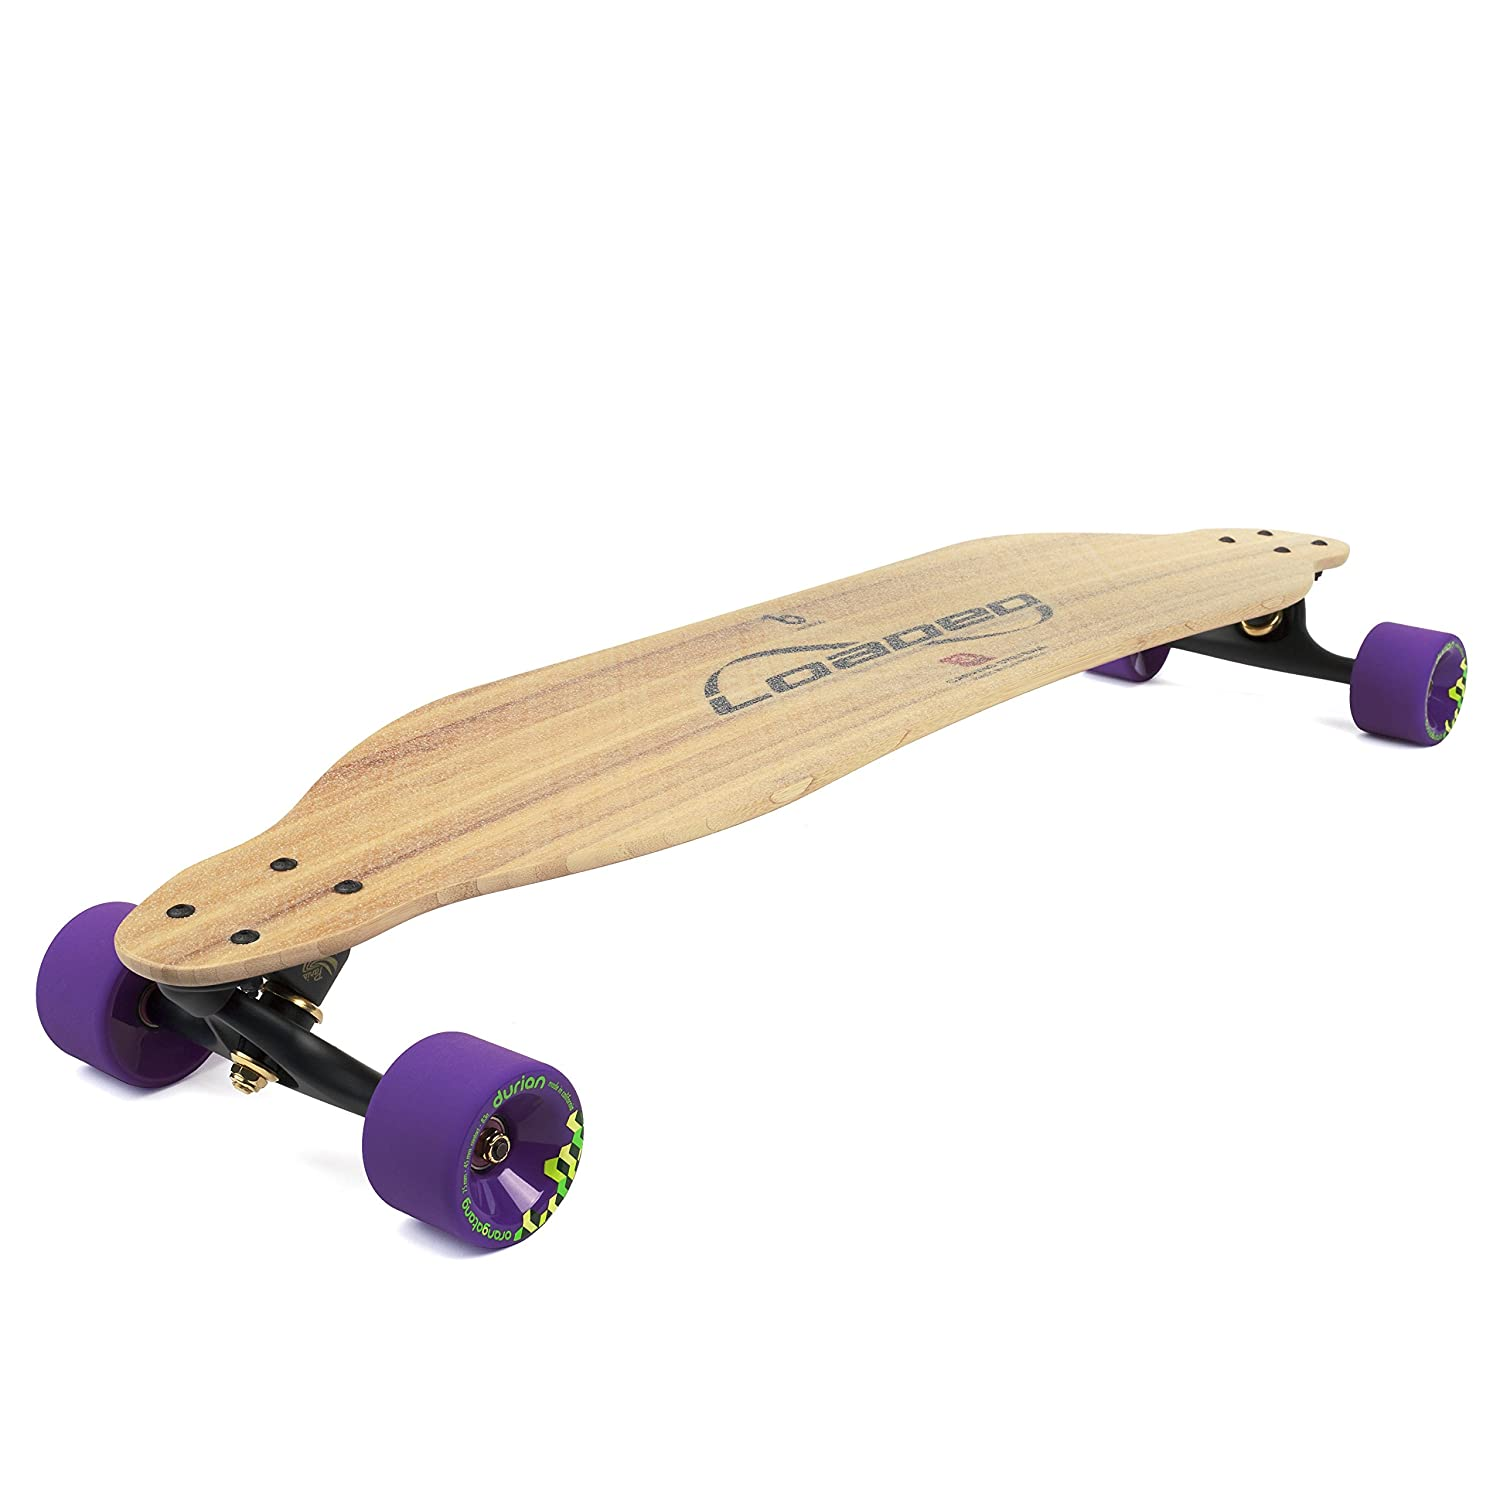 fb8e22674f17 Amazon.com : Loaded Boards Vanguard Bamboo Longboard Skateboard Complete :  Sports & Outdoors